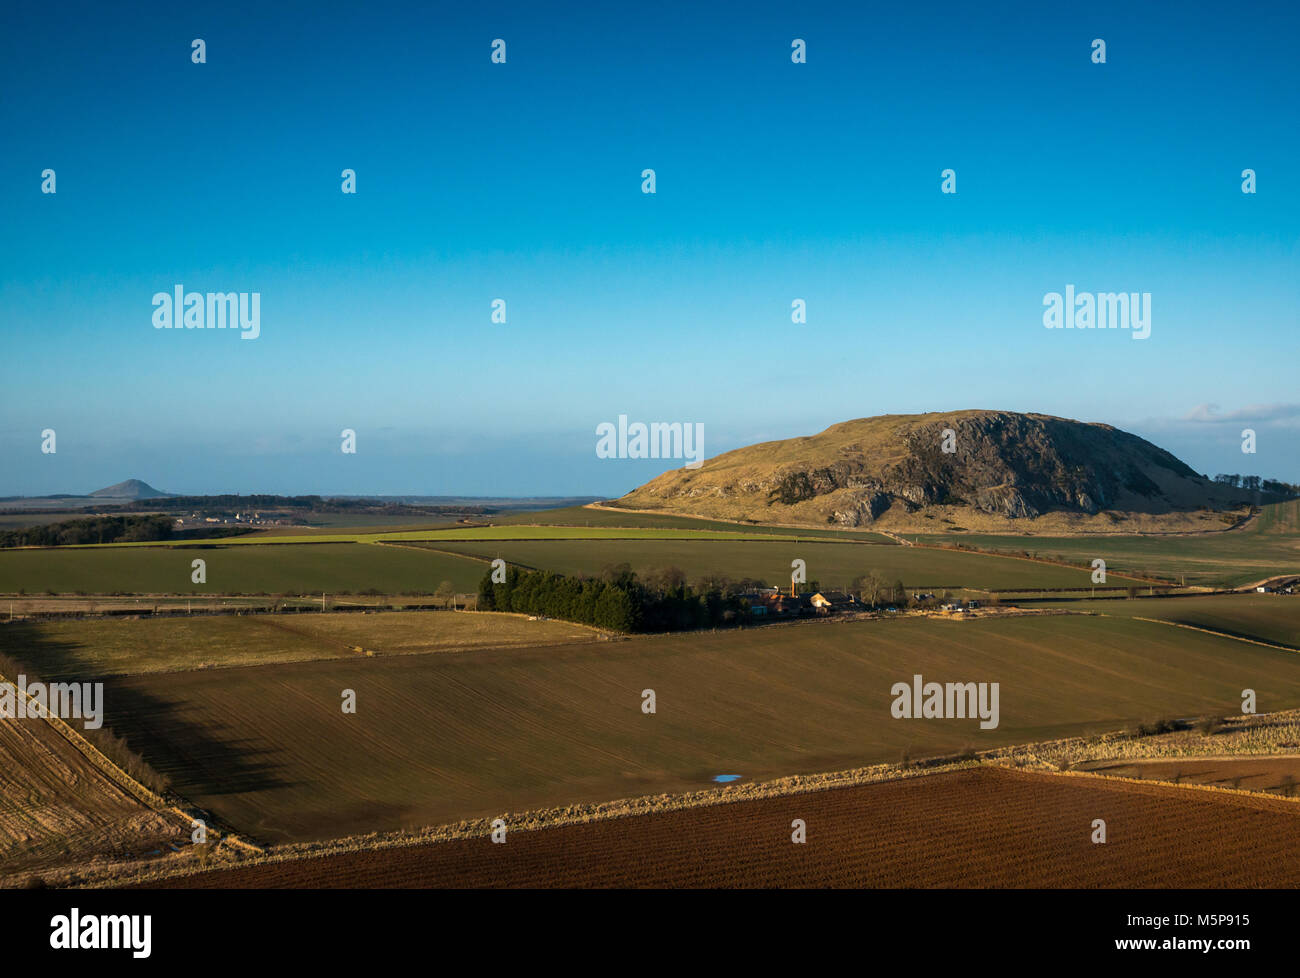 Blaikie Heugh East Lothian, Scotland, United Kingdom, 25th February 2018. Completely clear blue sky with low sunlight - Stock Image